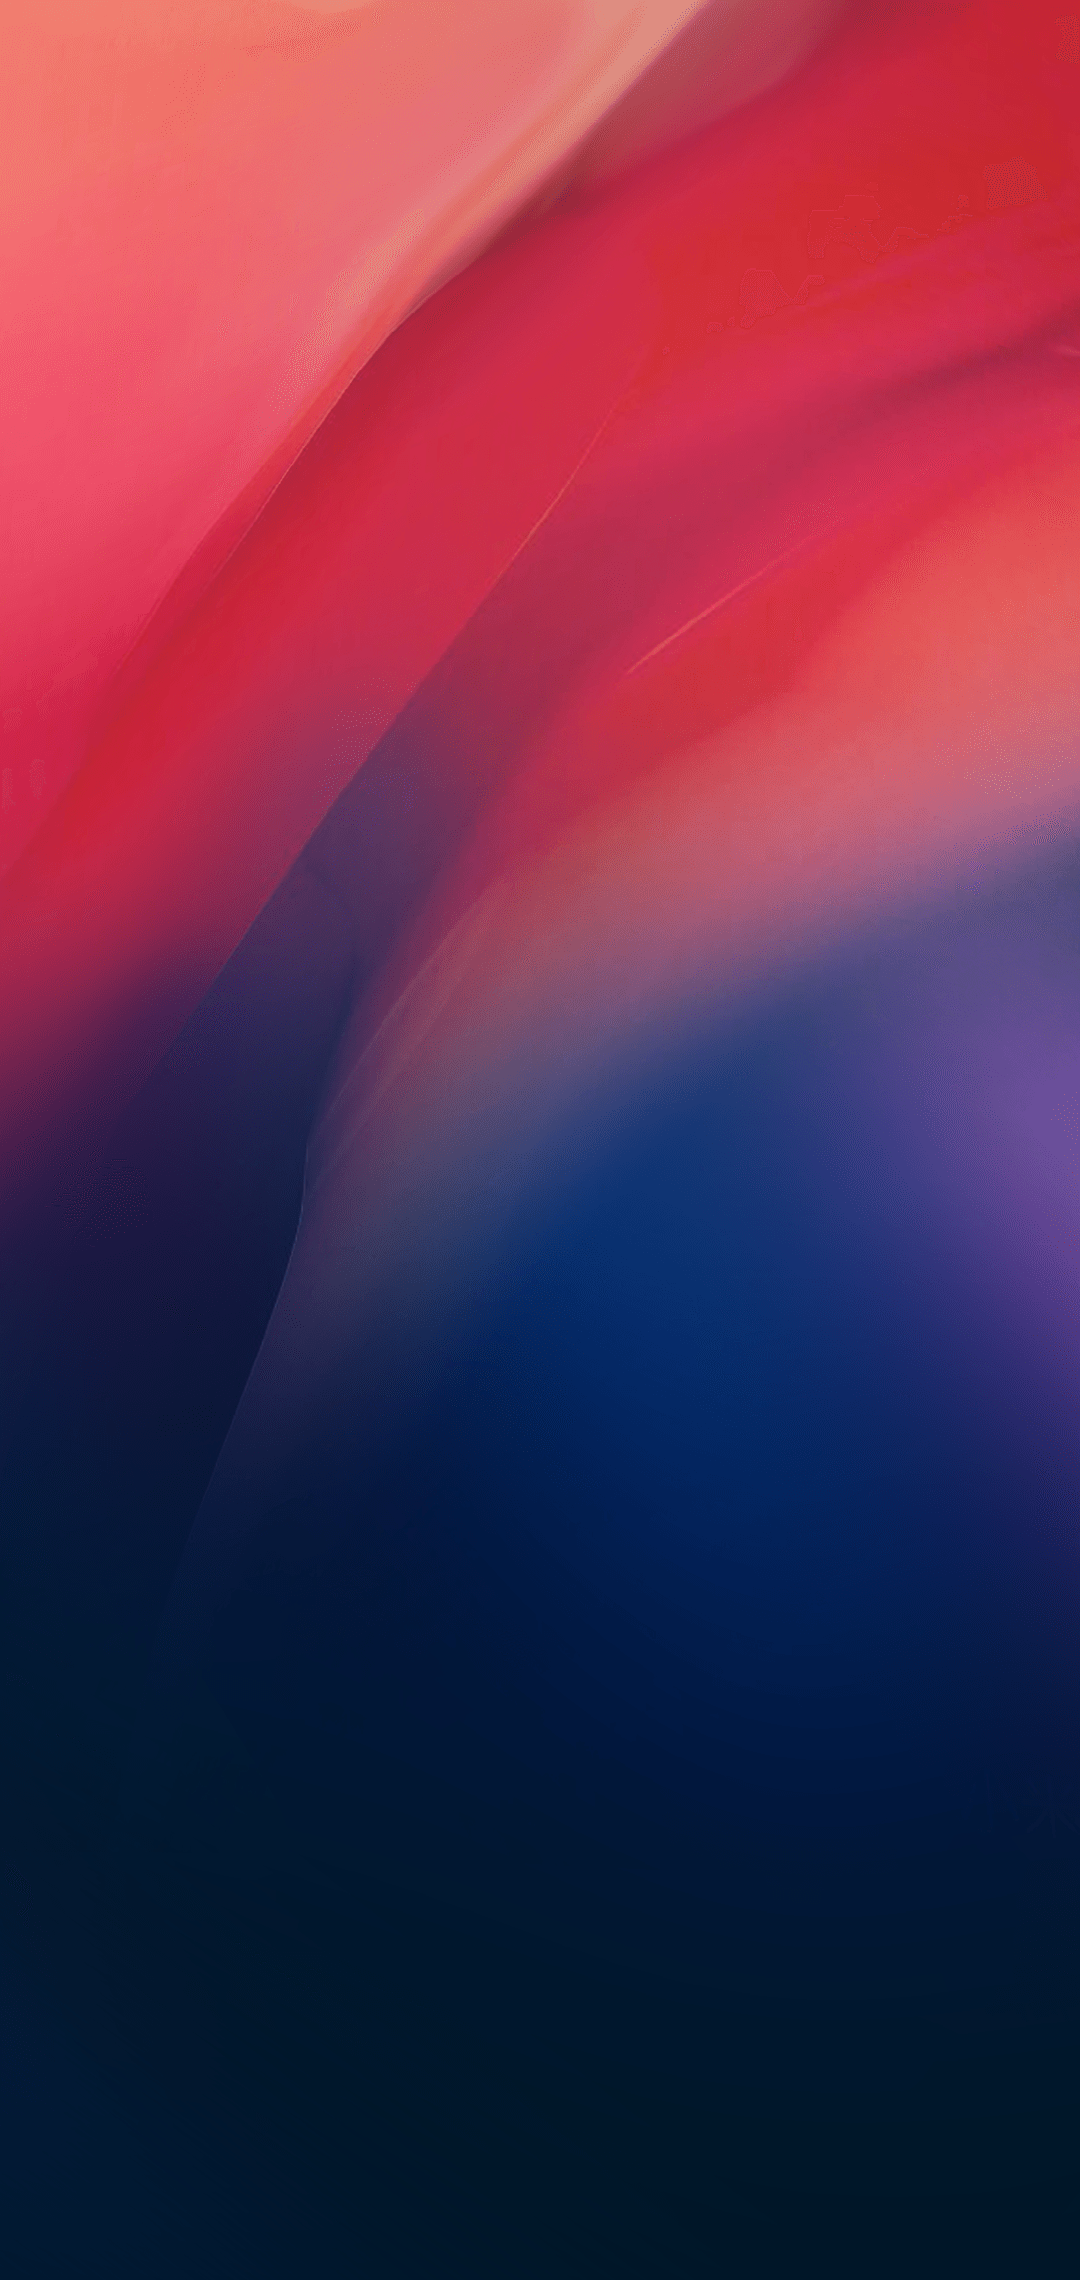 Download] Redmi Note 7 Wallpapers in FHD+ Resolution